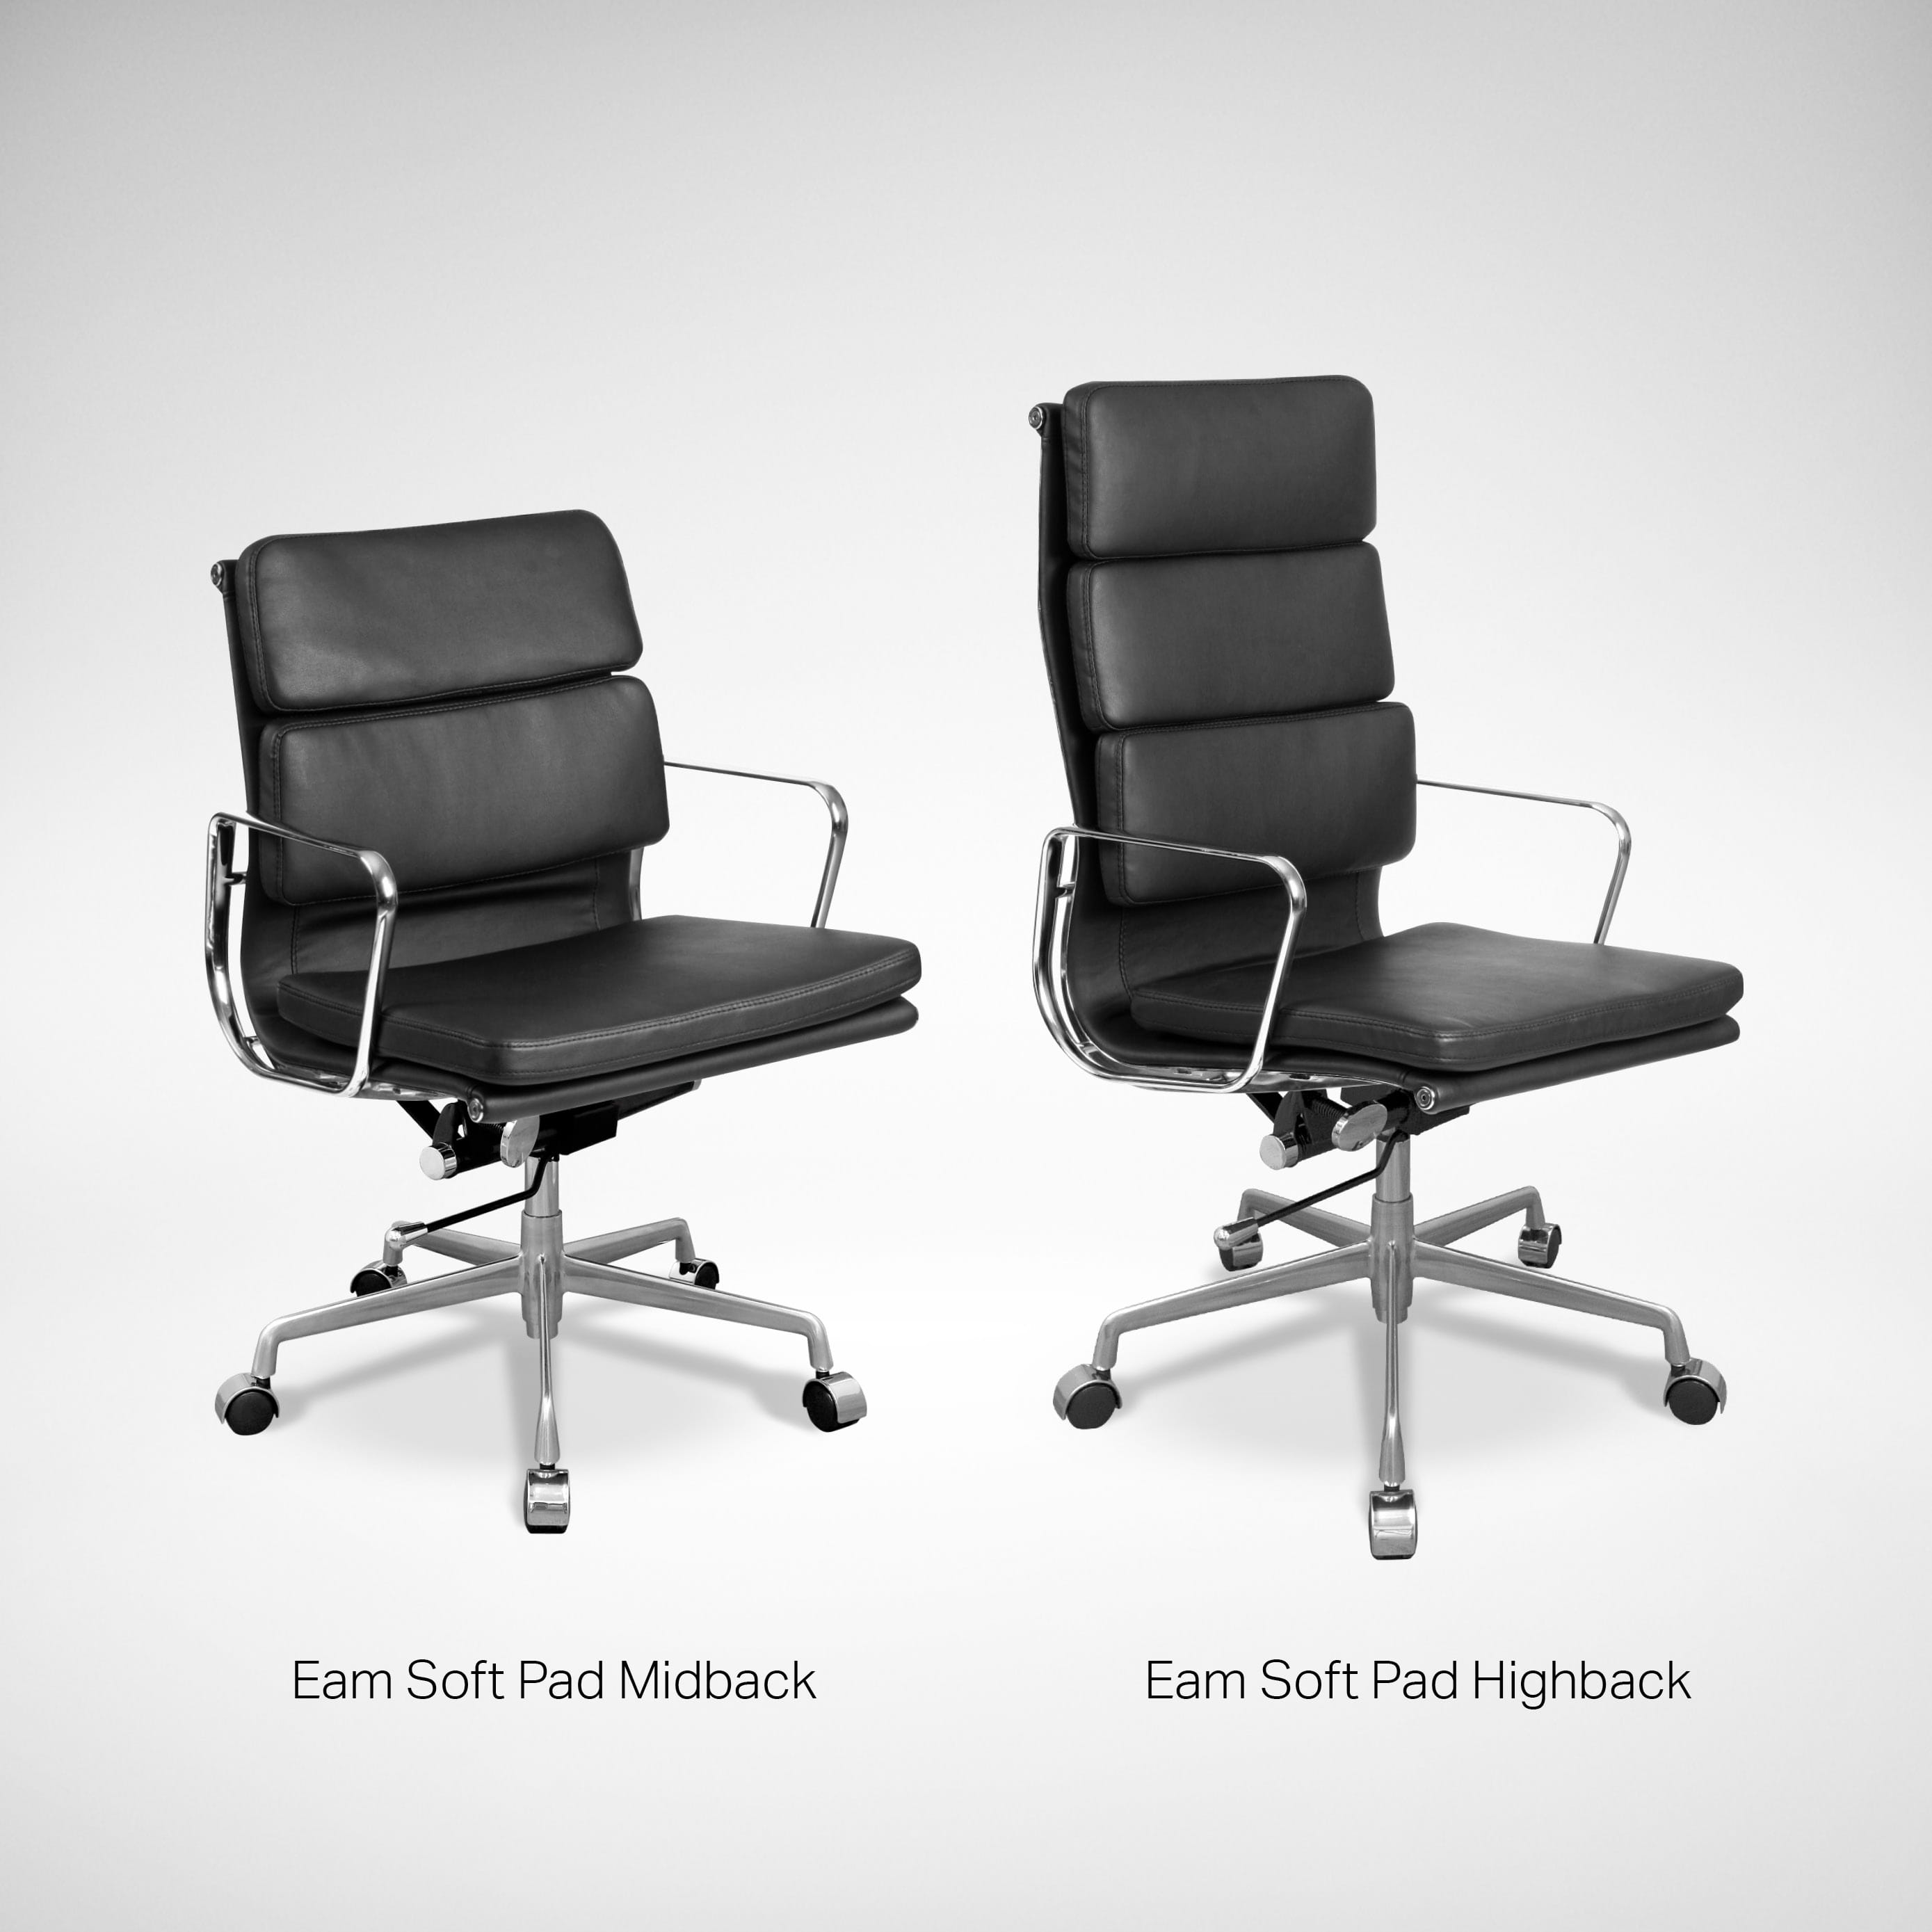 Eam Chair Eam Soft Pad Midback Office Chair Comfort Design The